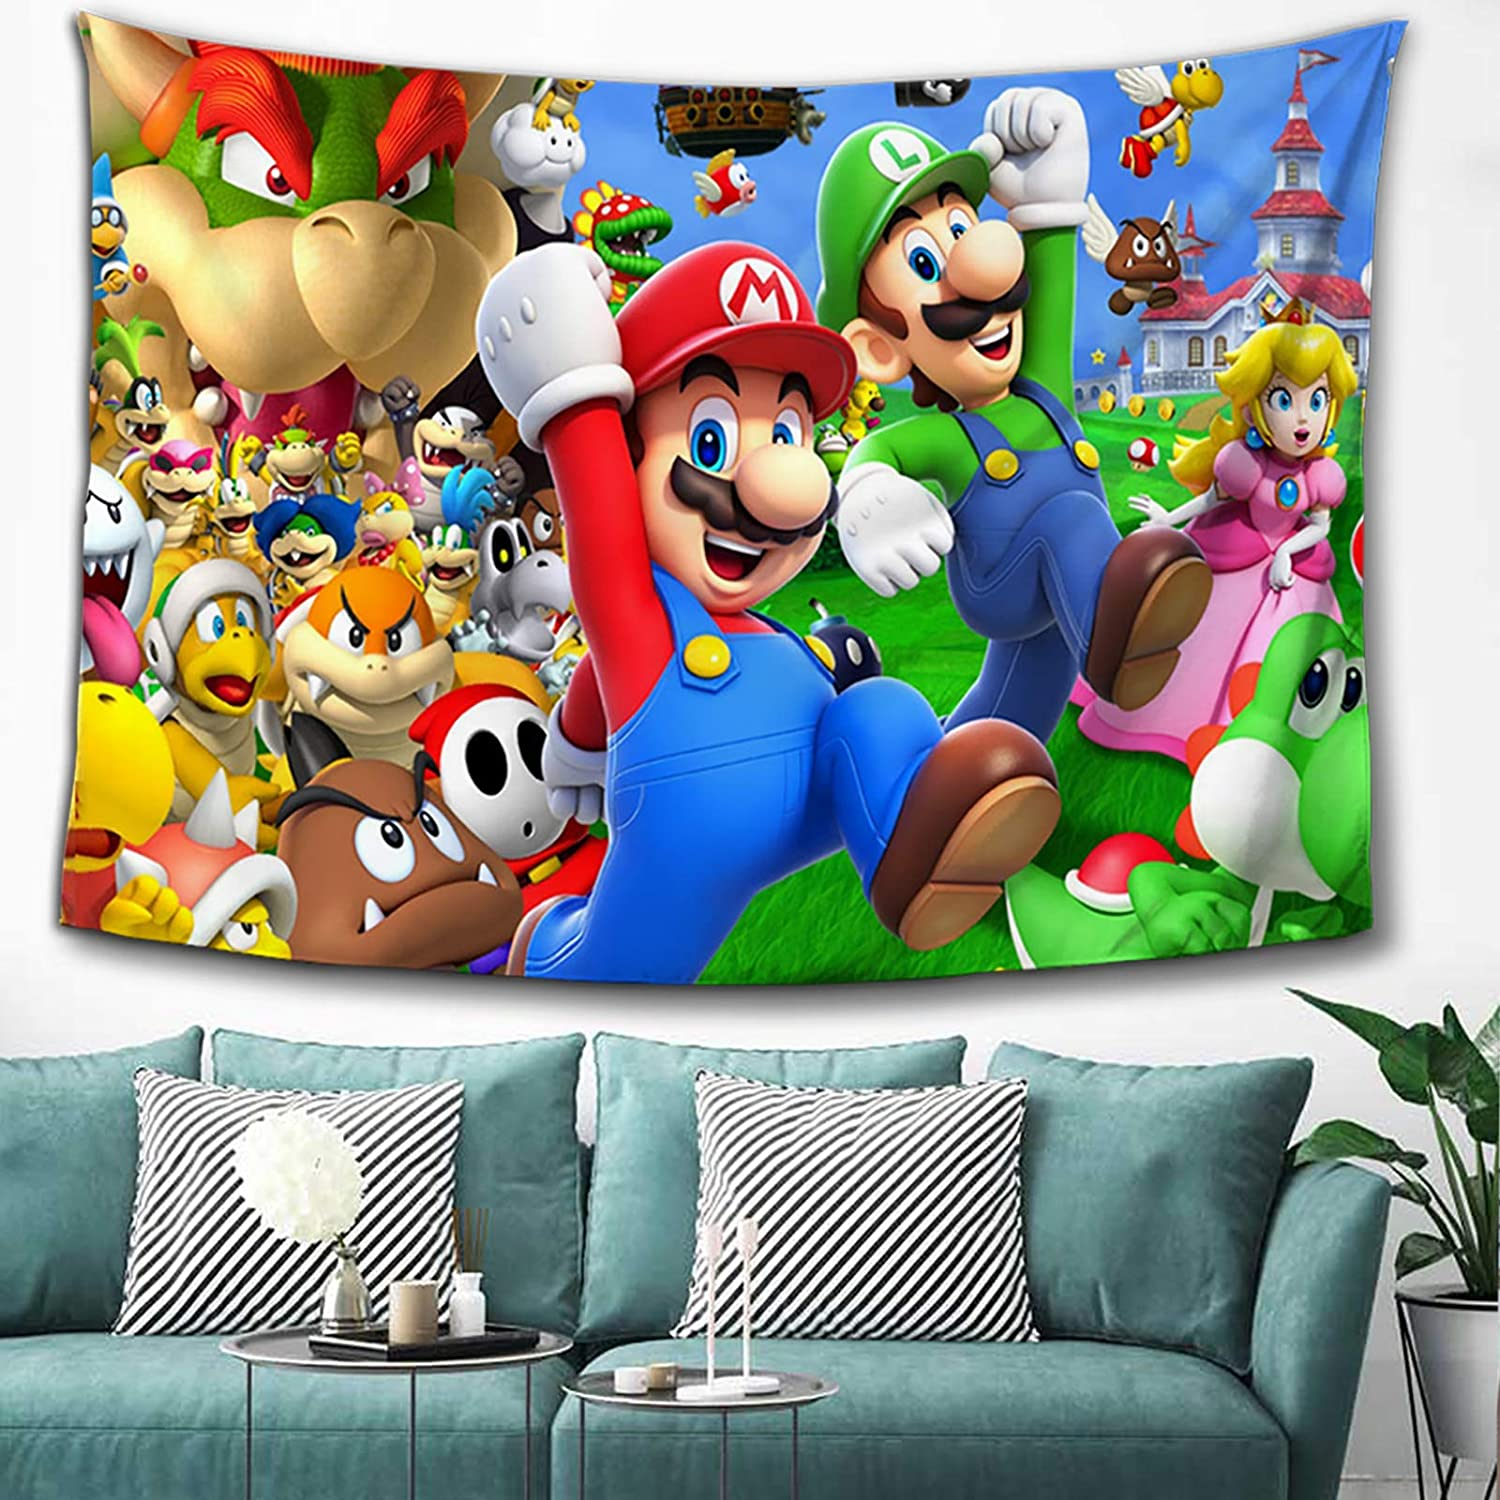 MOSIDECOR Anime Tapestry Wall Hanging for Bedroom Party Wall Decor Anime Wall Art for Birthday Gifts 60